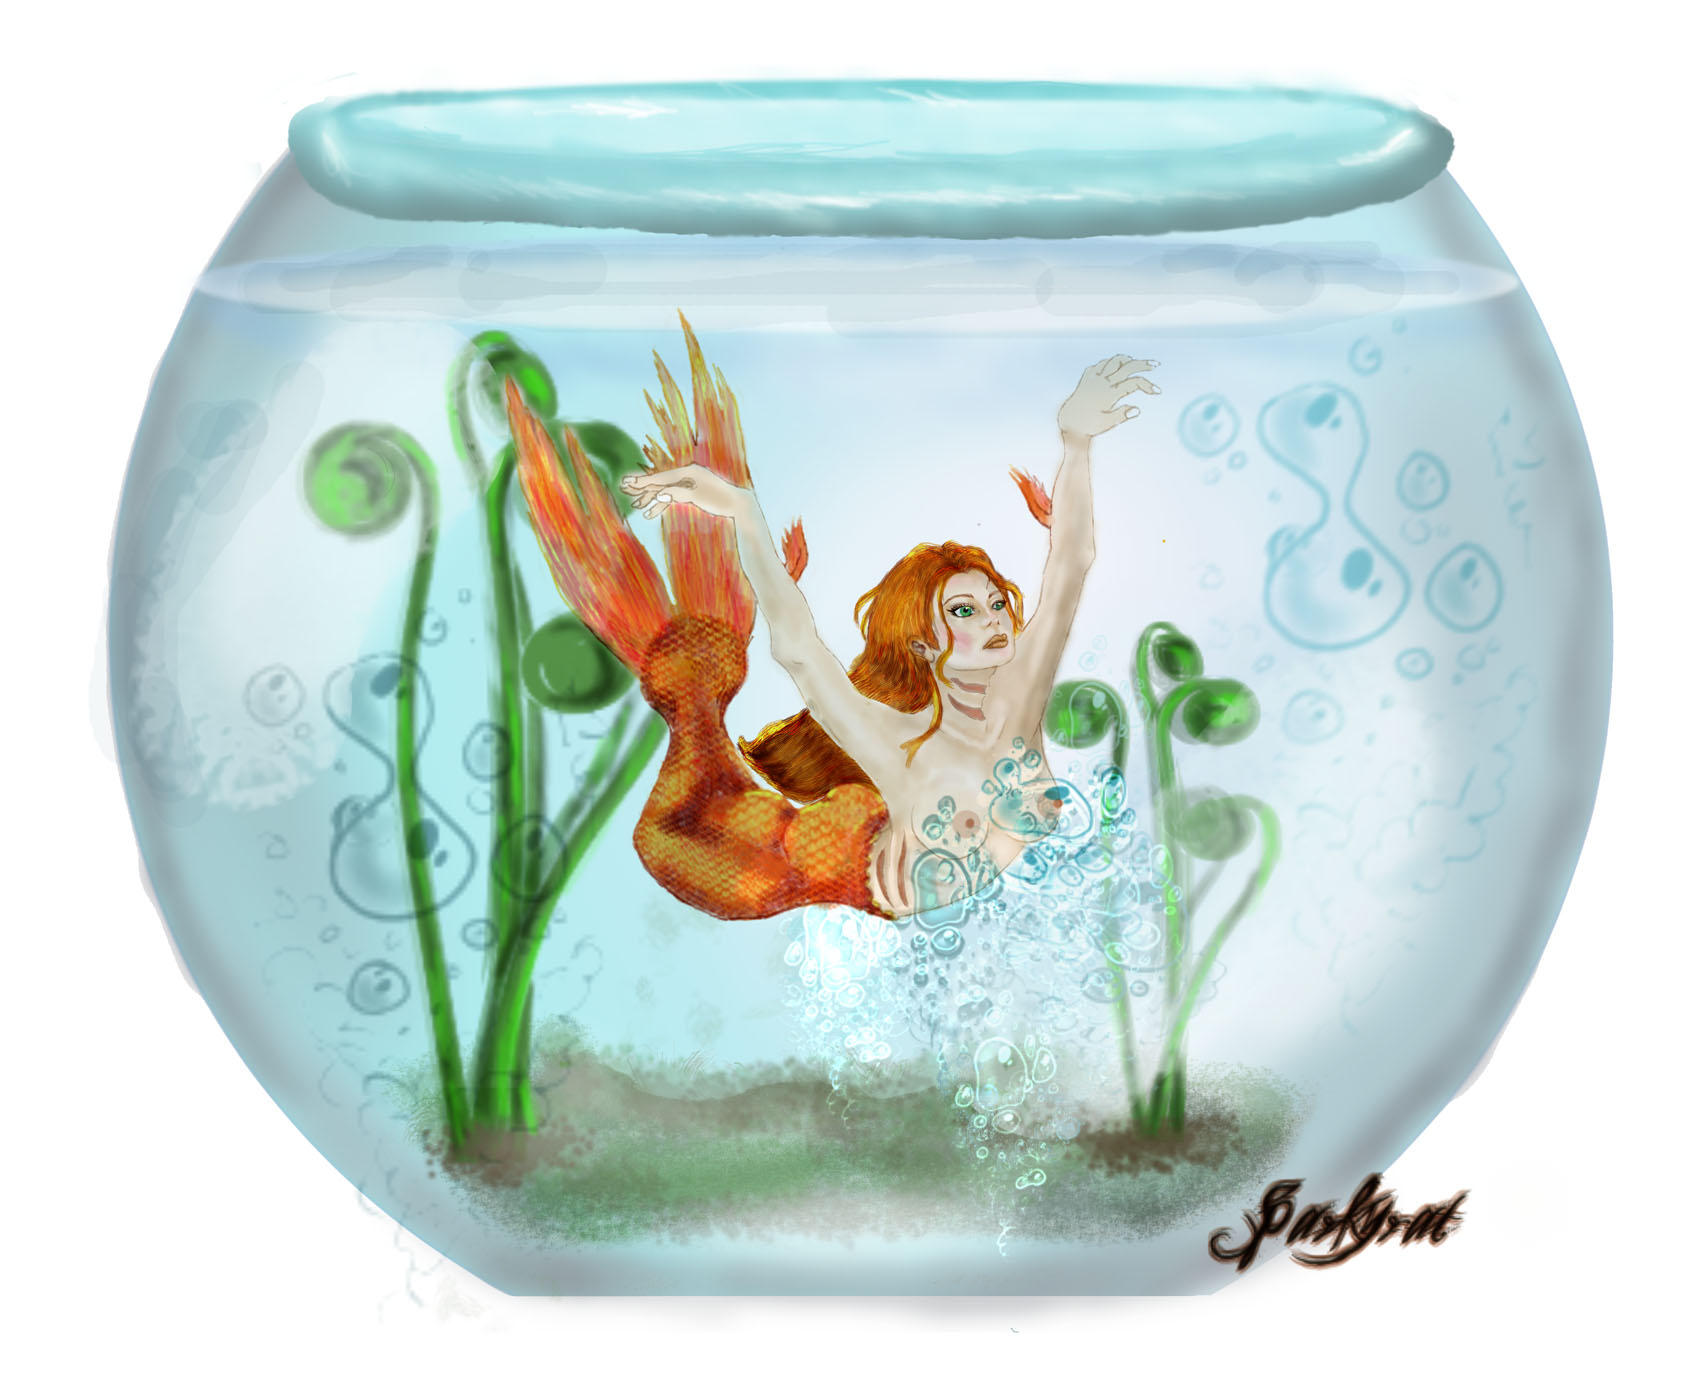 Trapped in a Fishbowl by sparkyrat